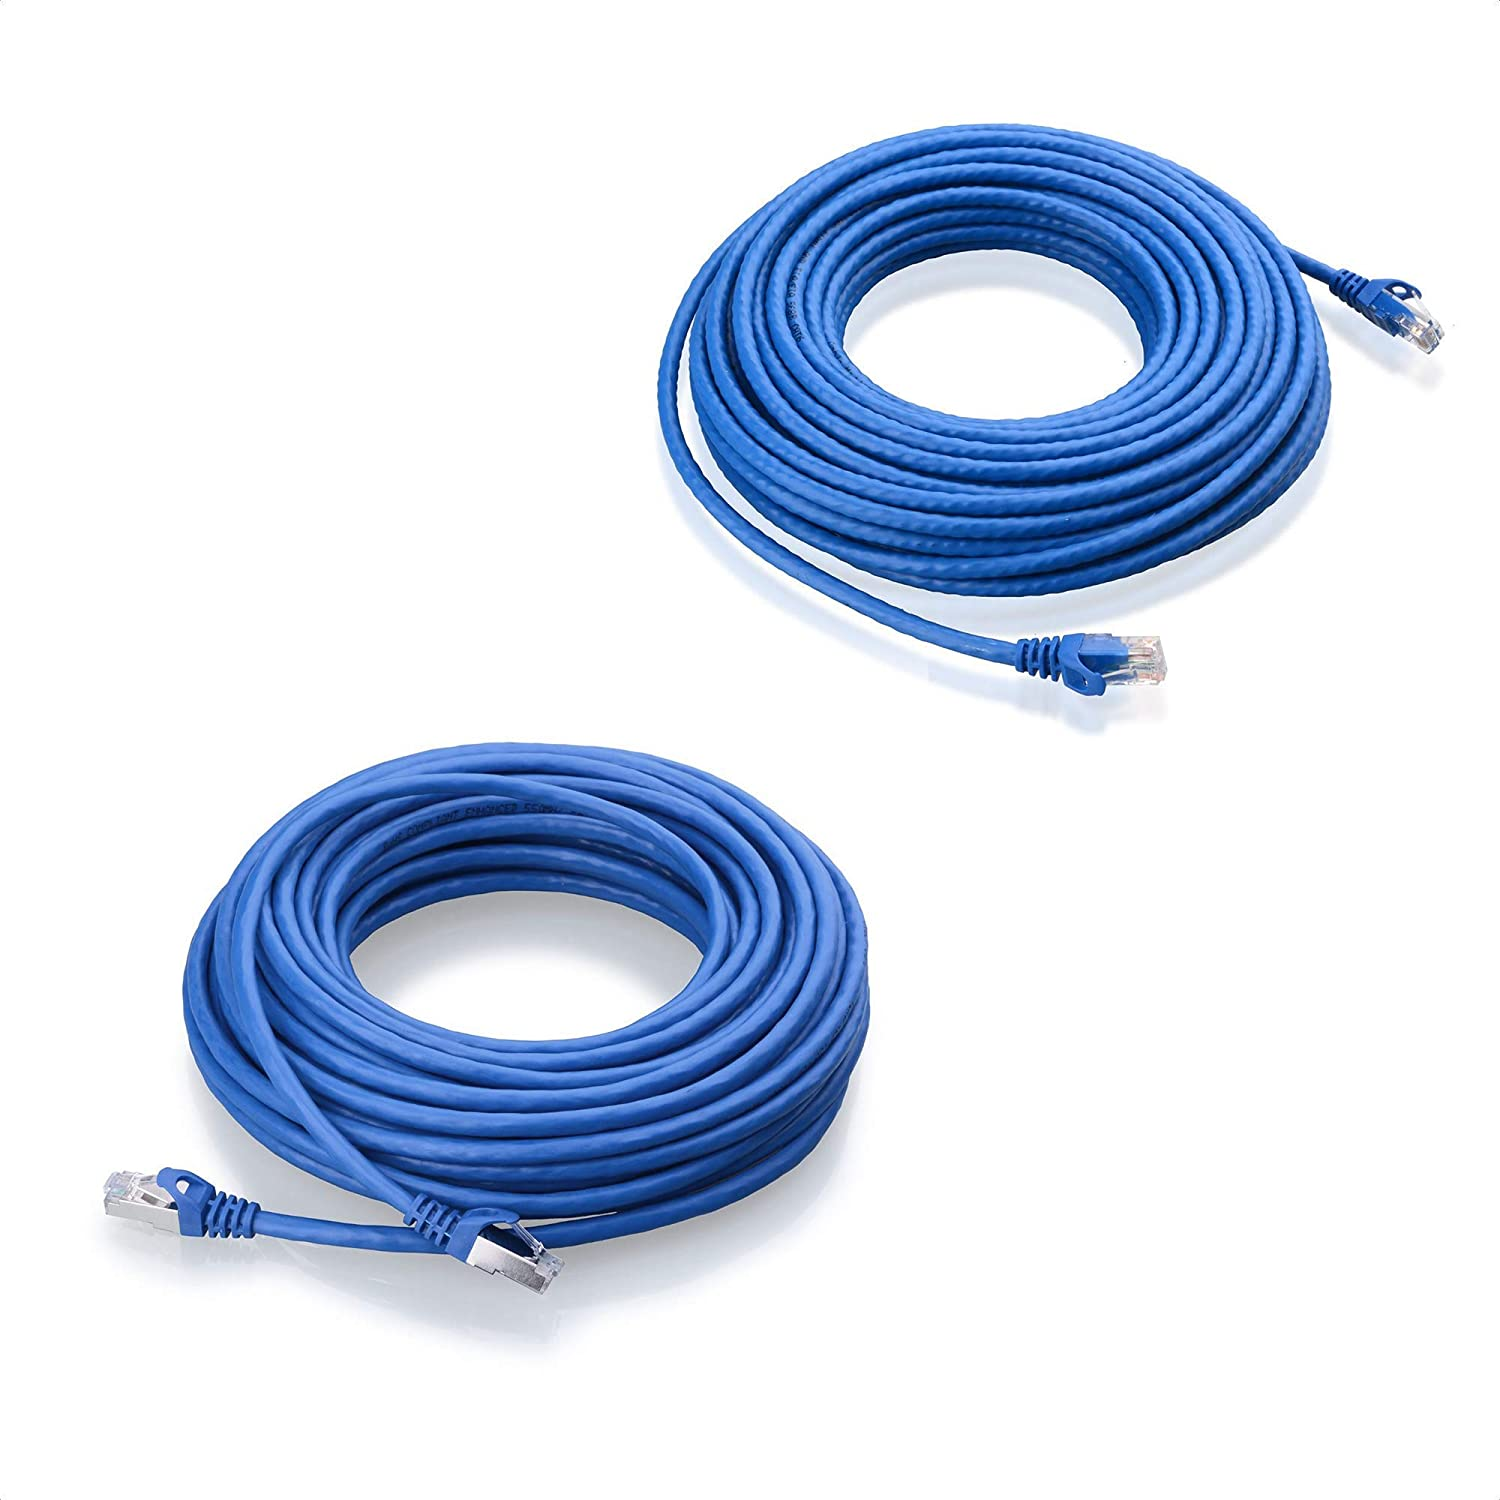 Brand new Popular brand in the world Cable Matters Snagless Long Cat6 Ethernet Cat